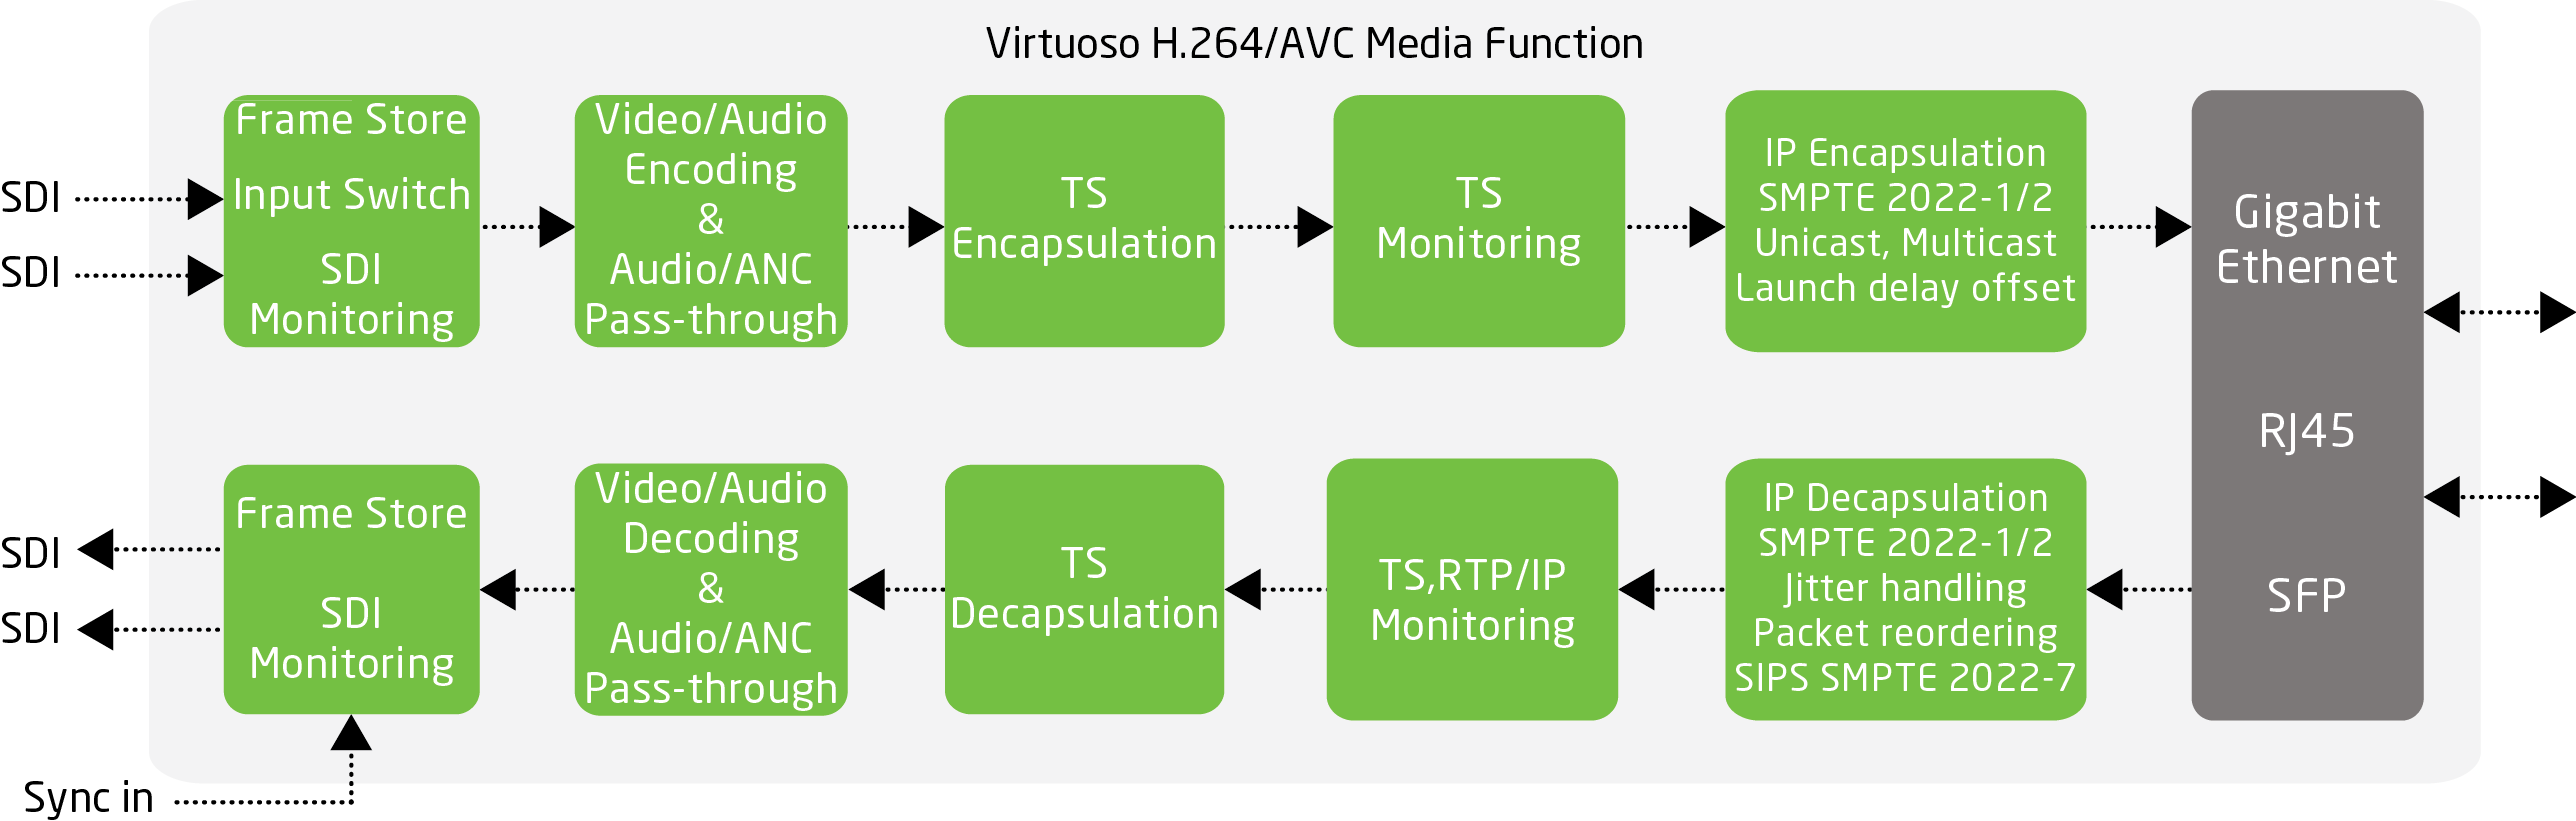 virtuoso_h264_master_diagram_1640